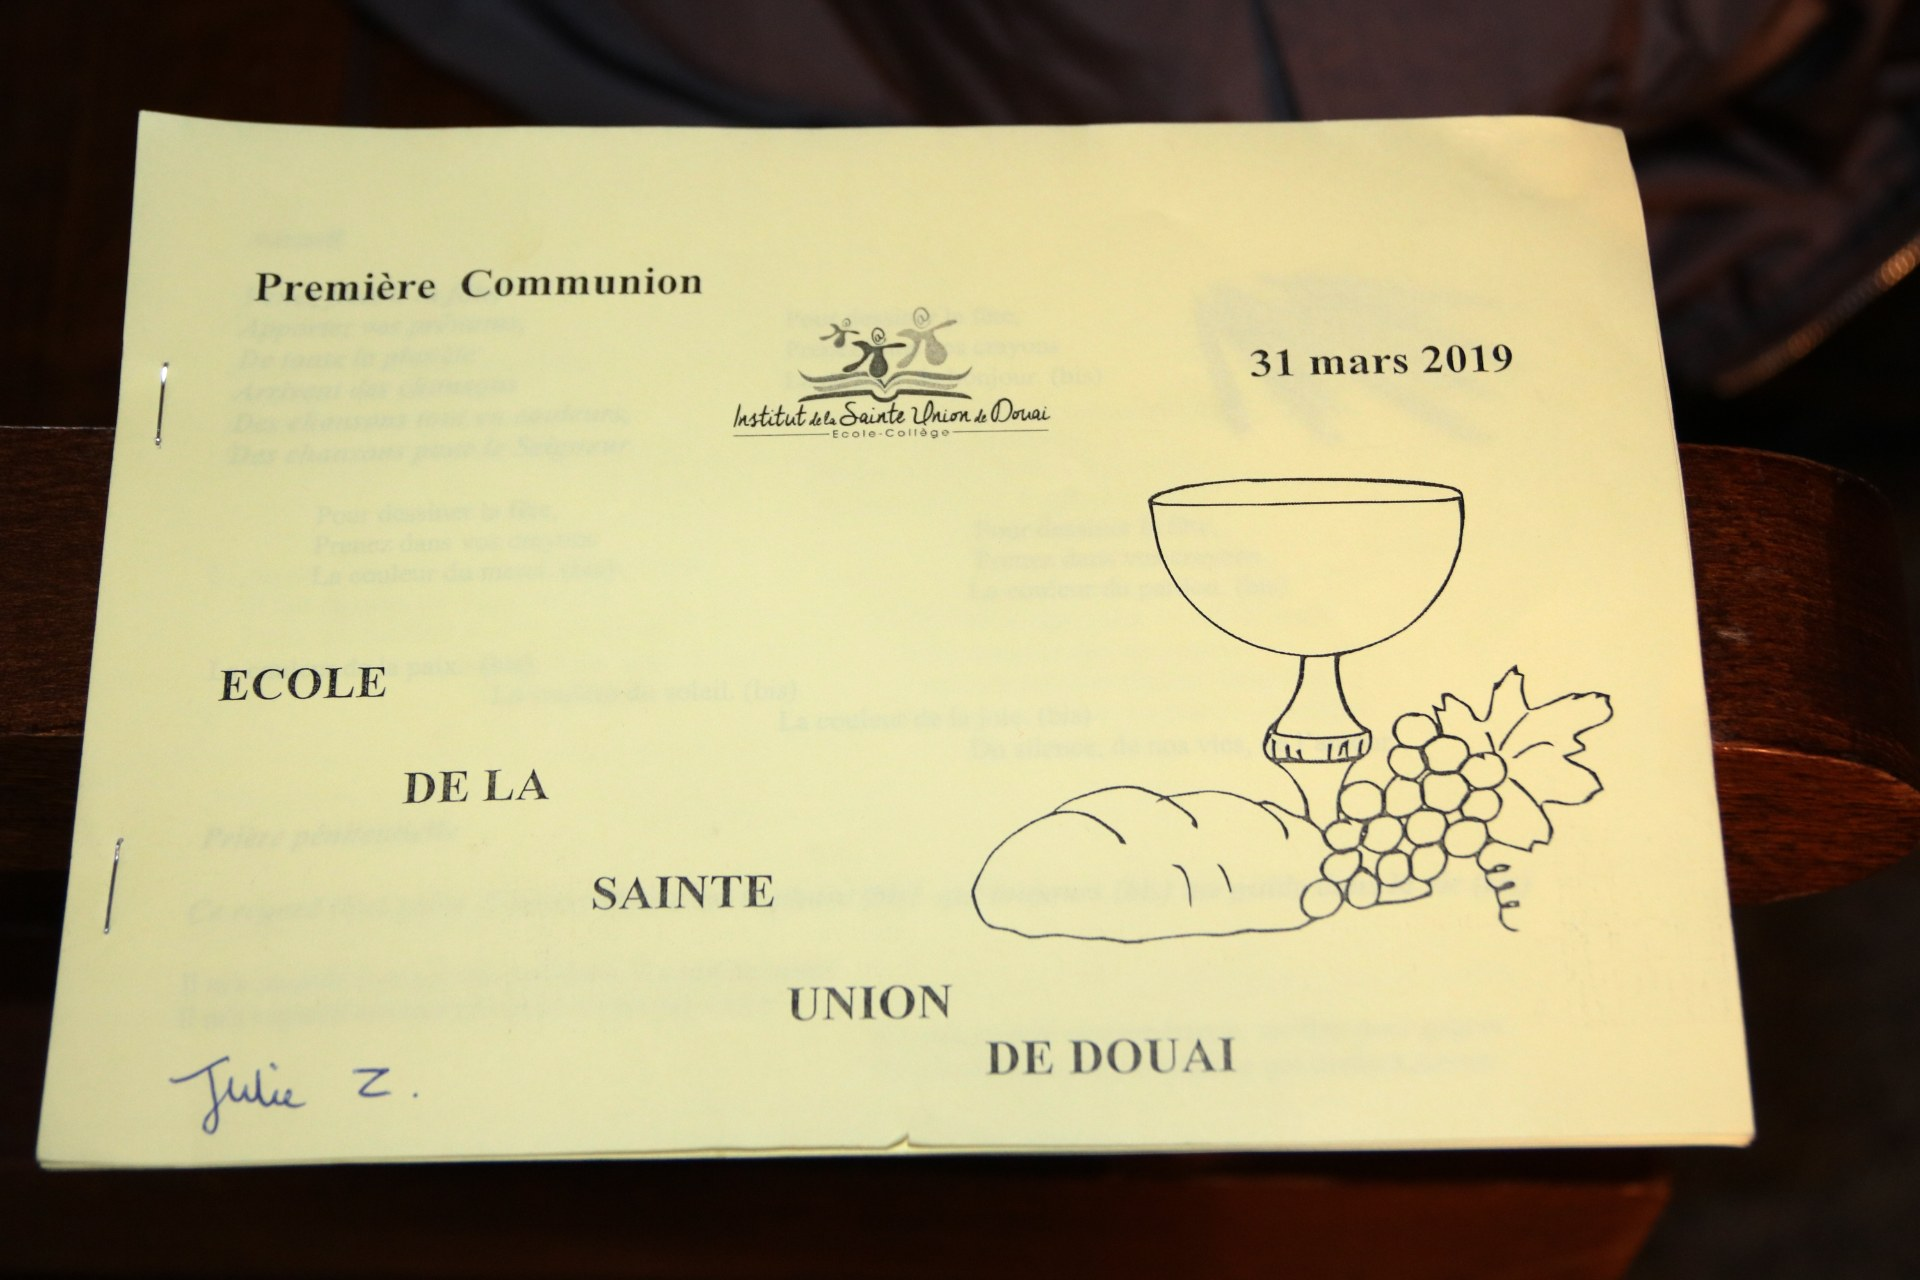 1903_1eres communions (Ecole Ste Union) 112